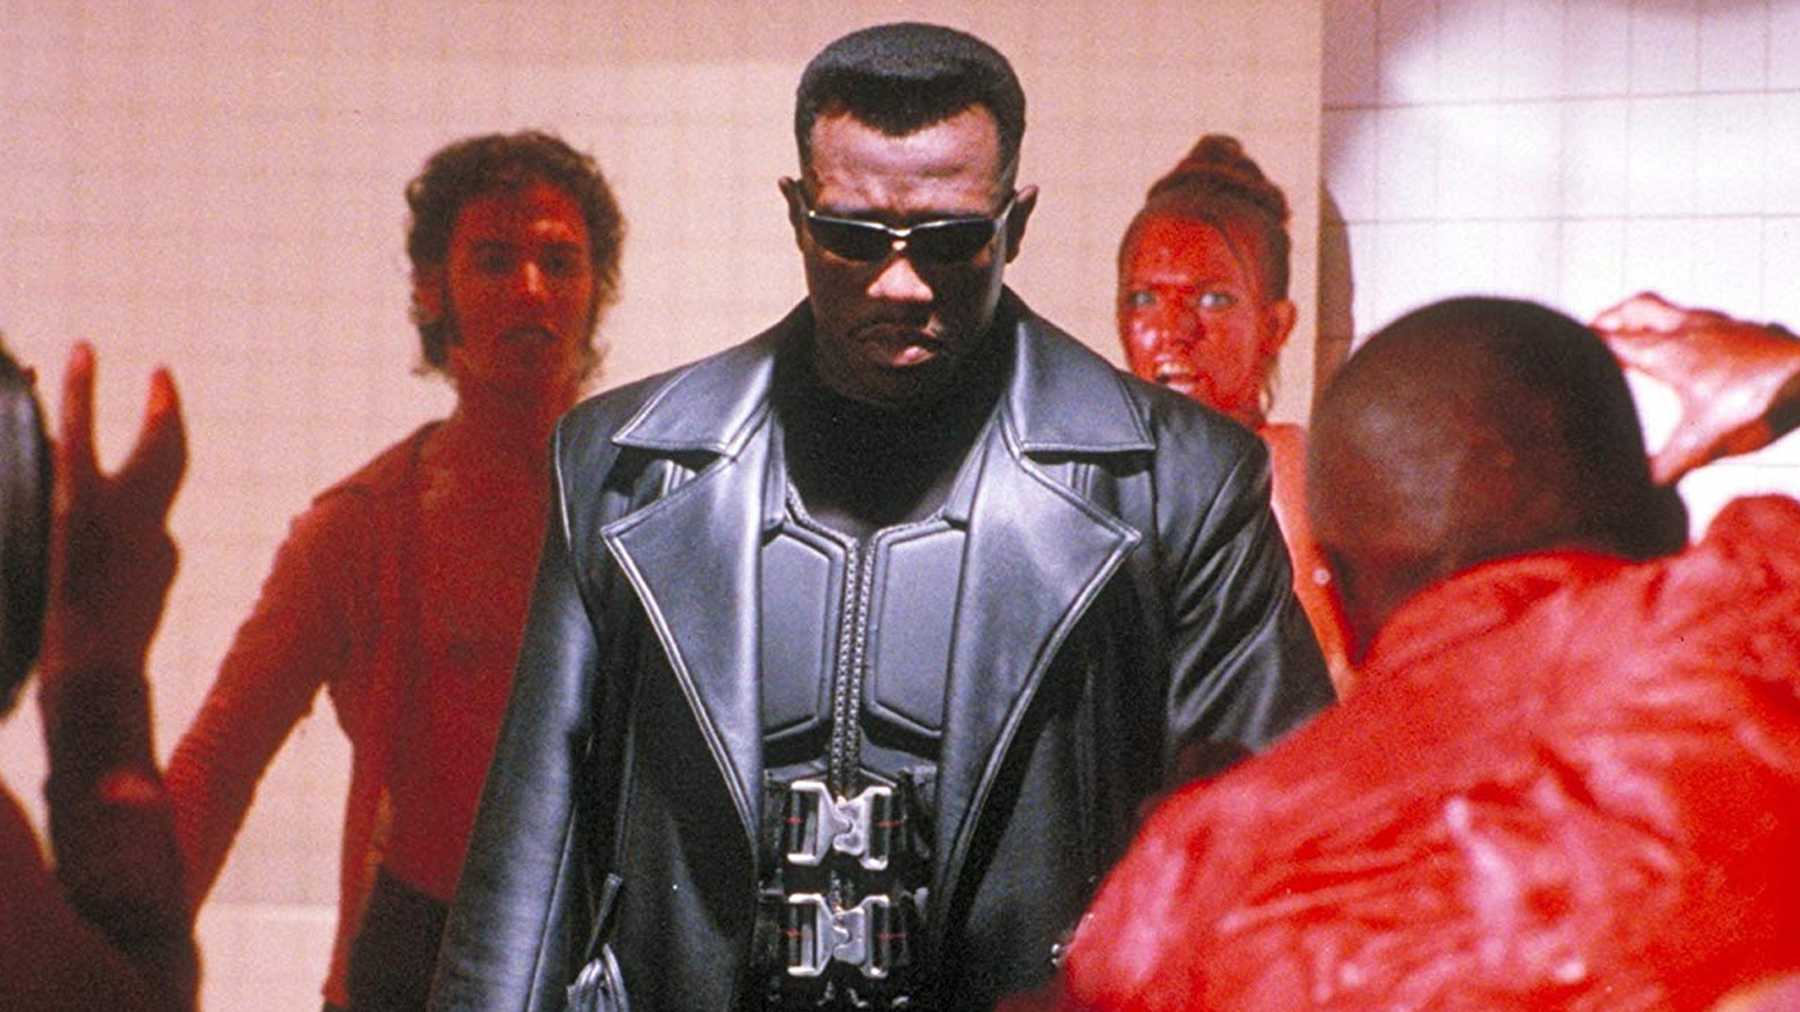 Wesley Snipes as Blade Marvel